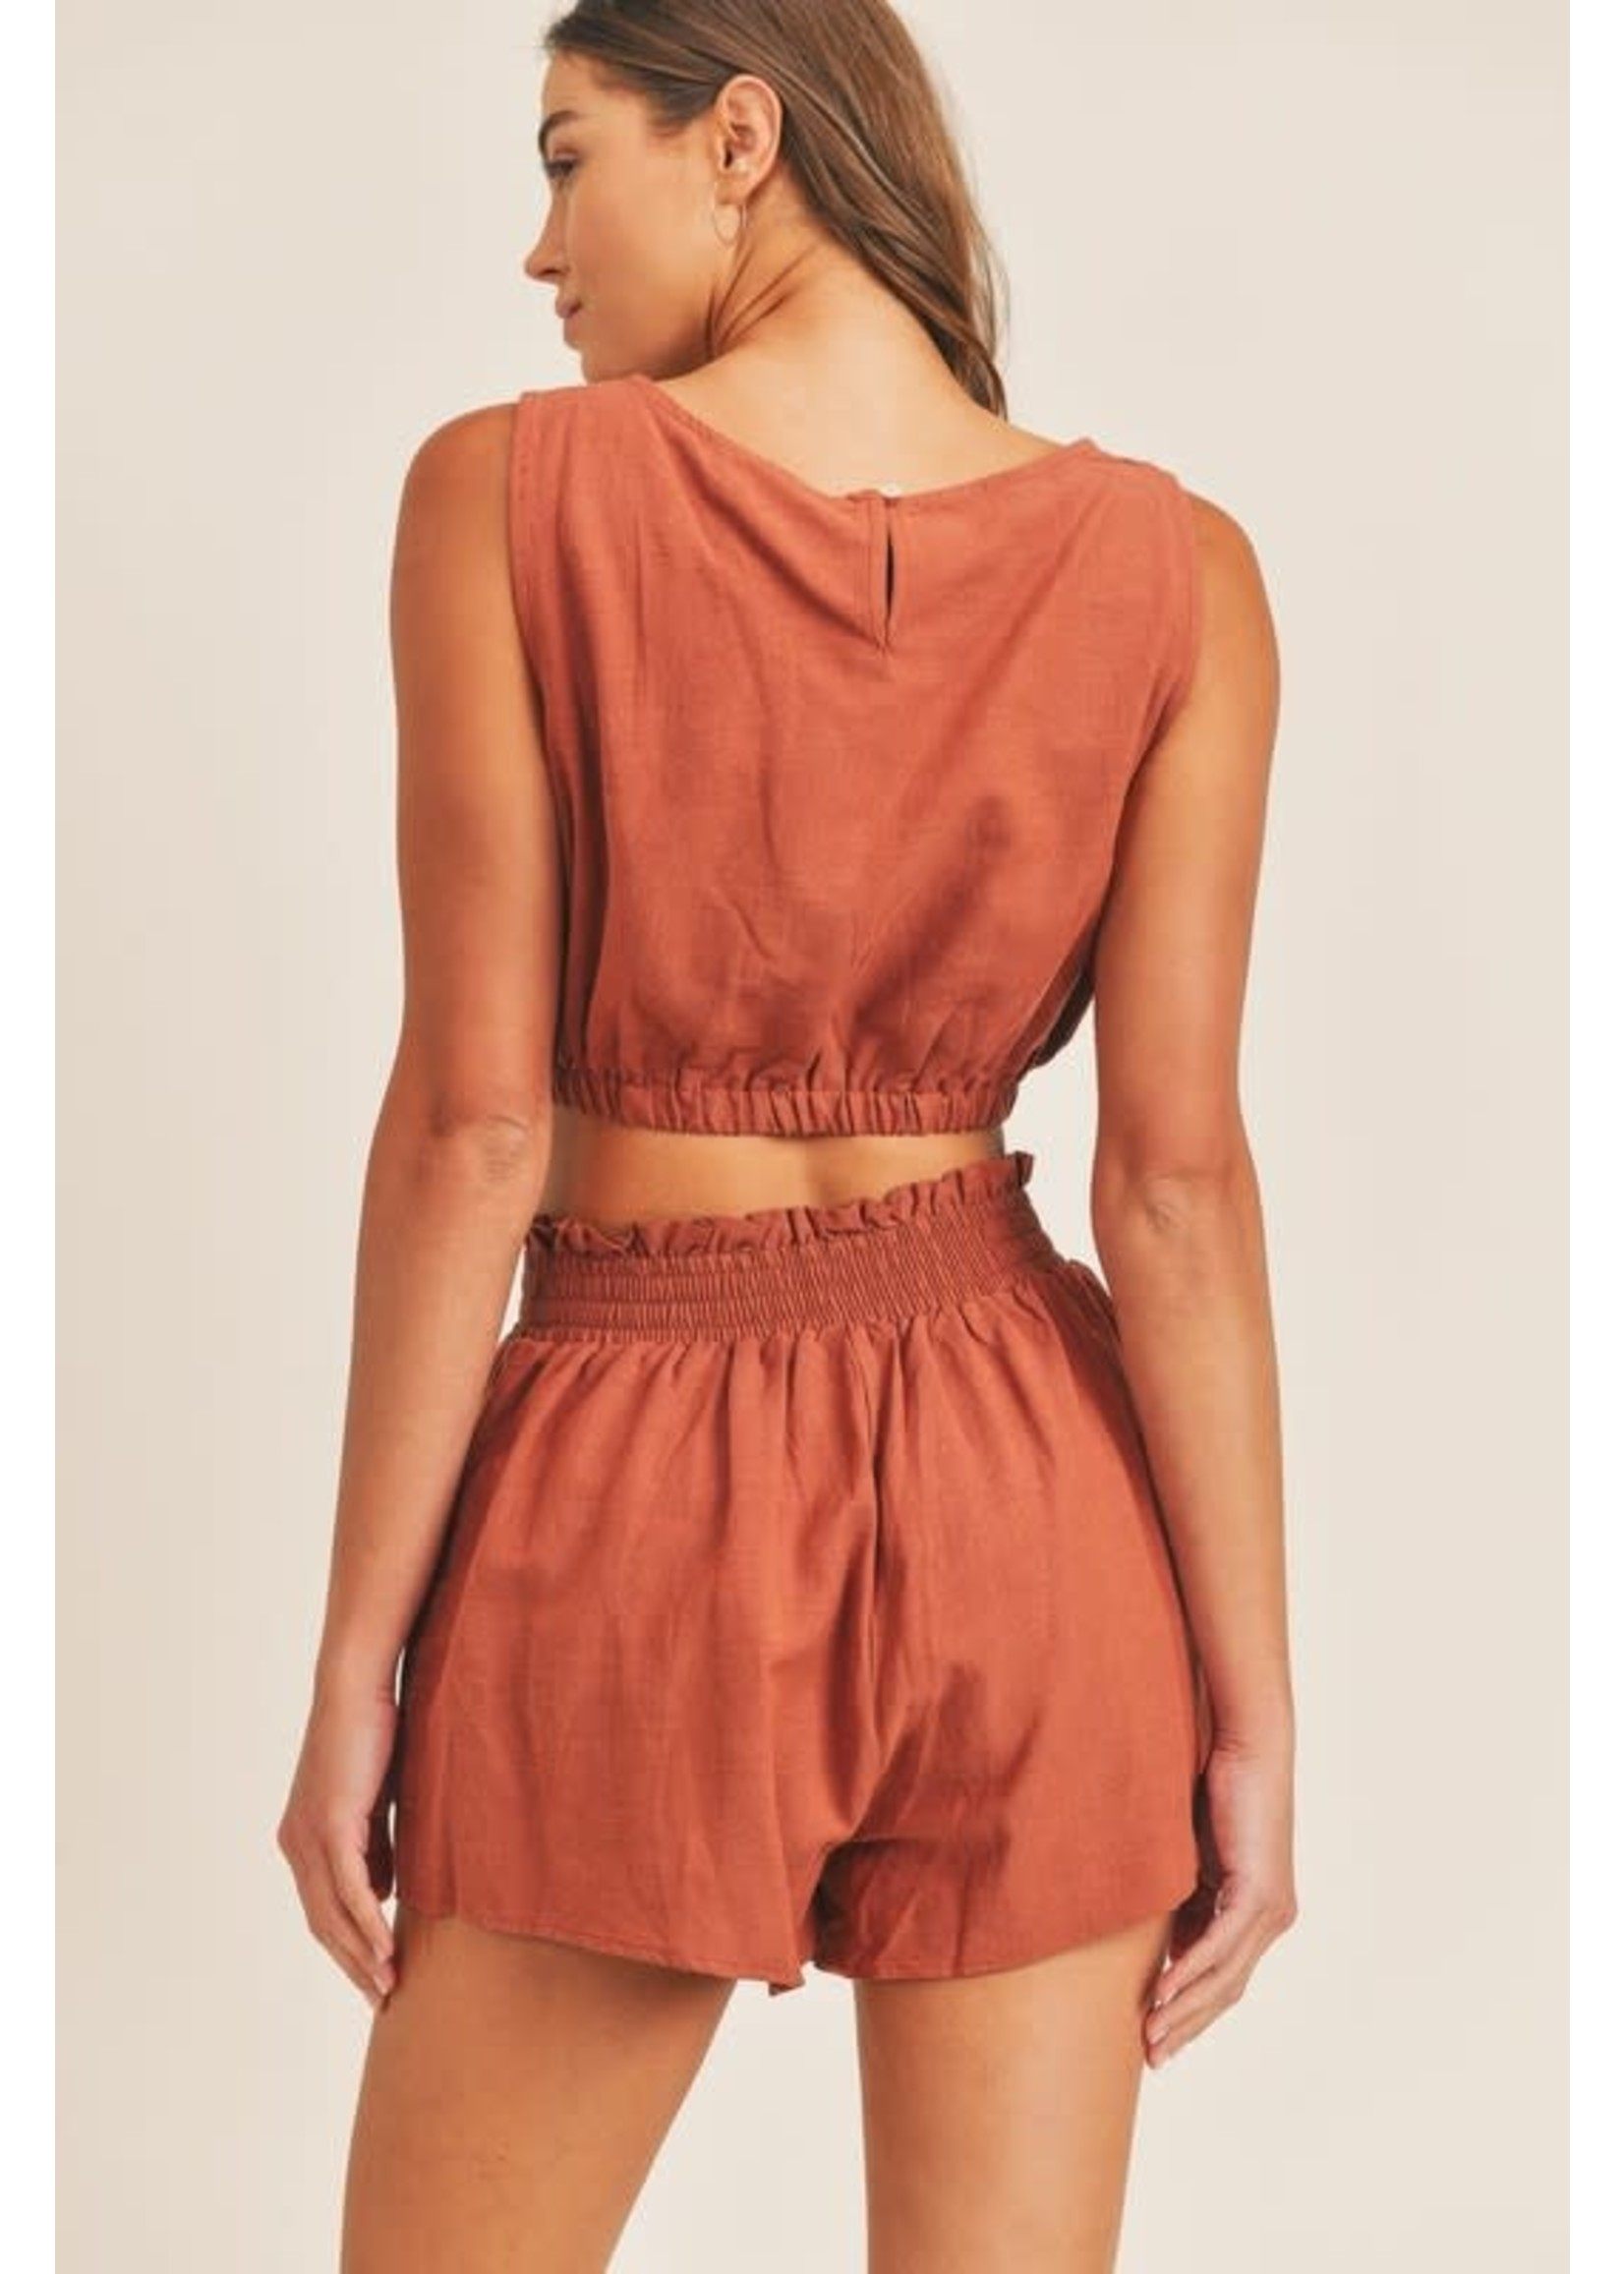 Mable Sleeveless Crop Top and Shorts SET - MST7266